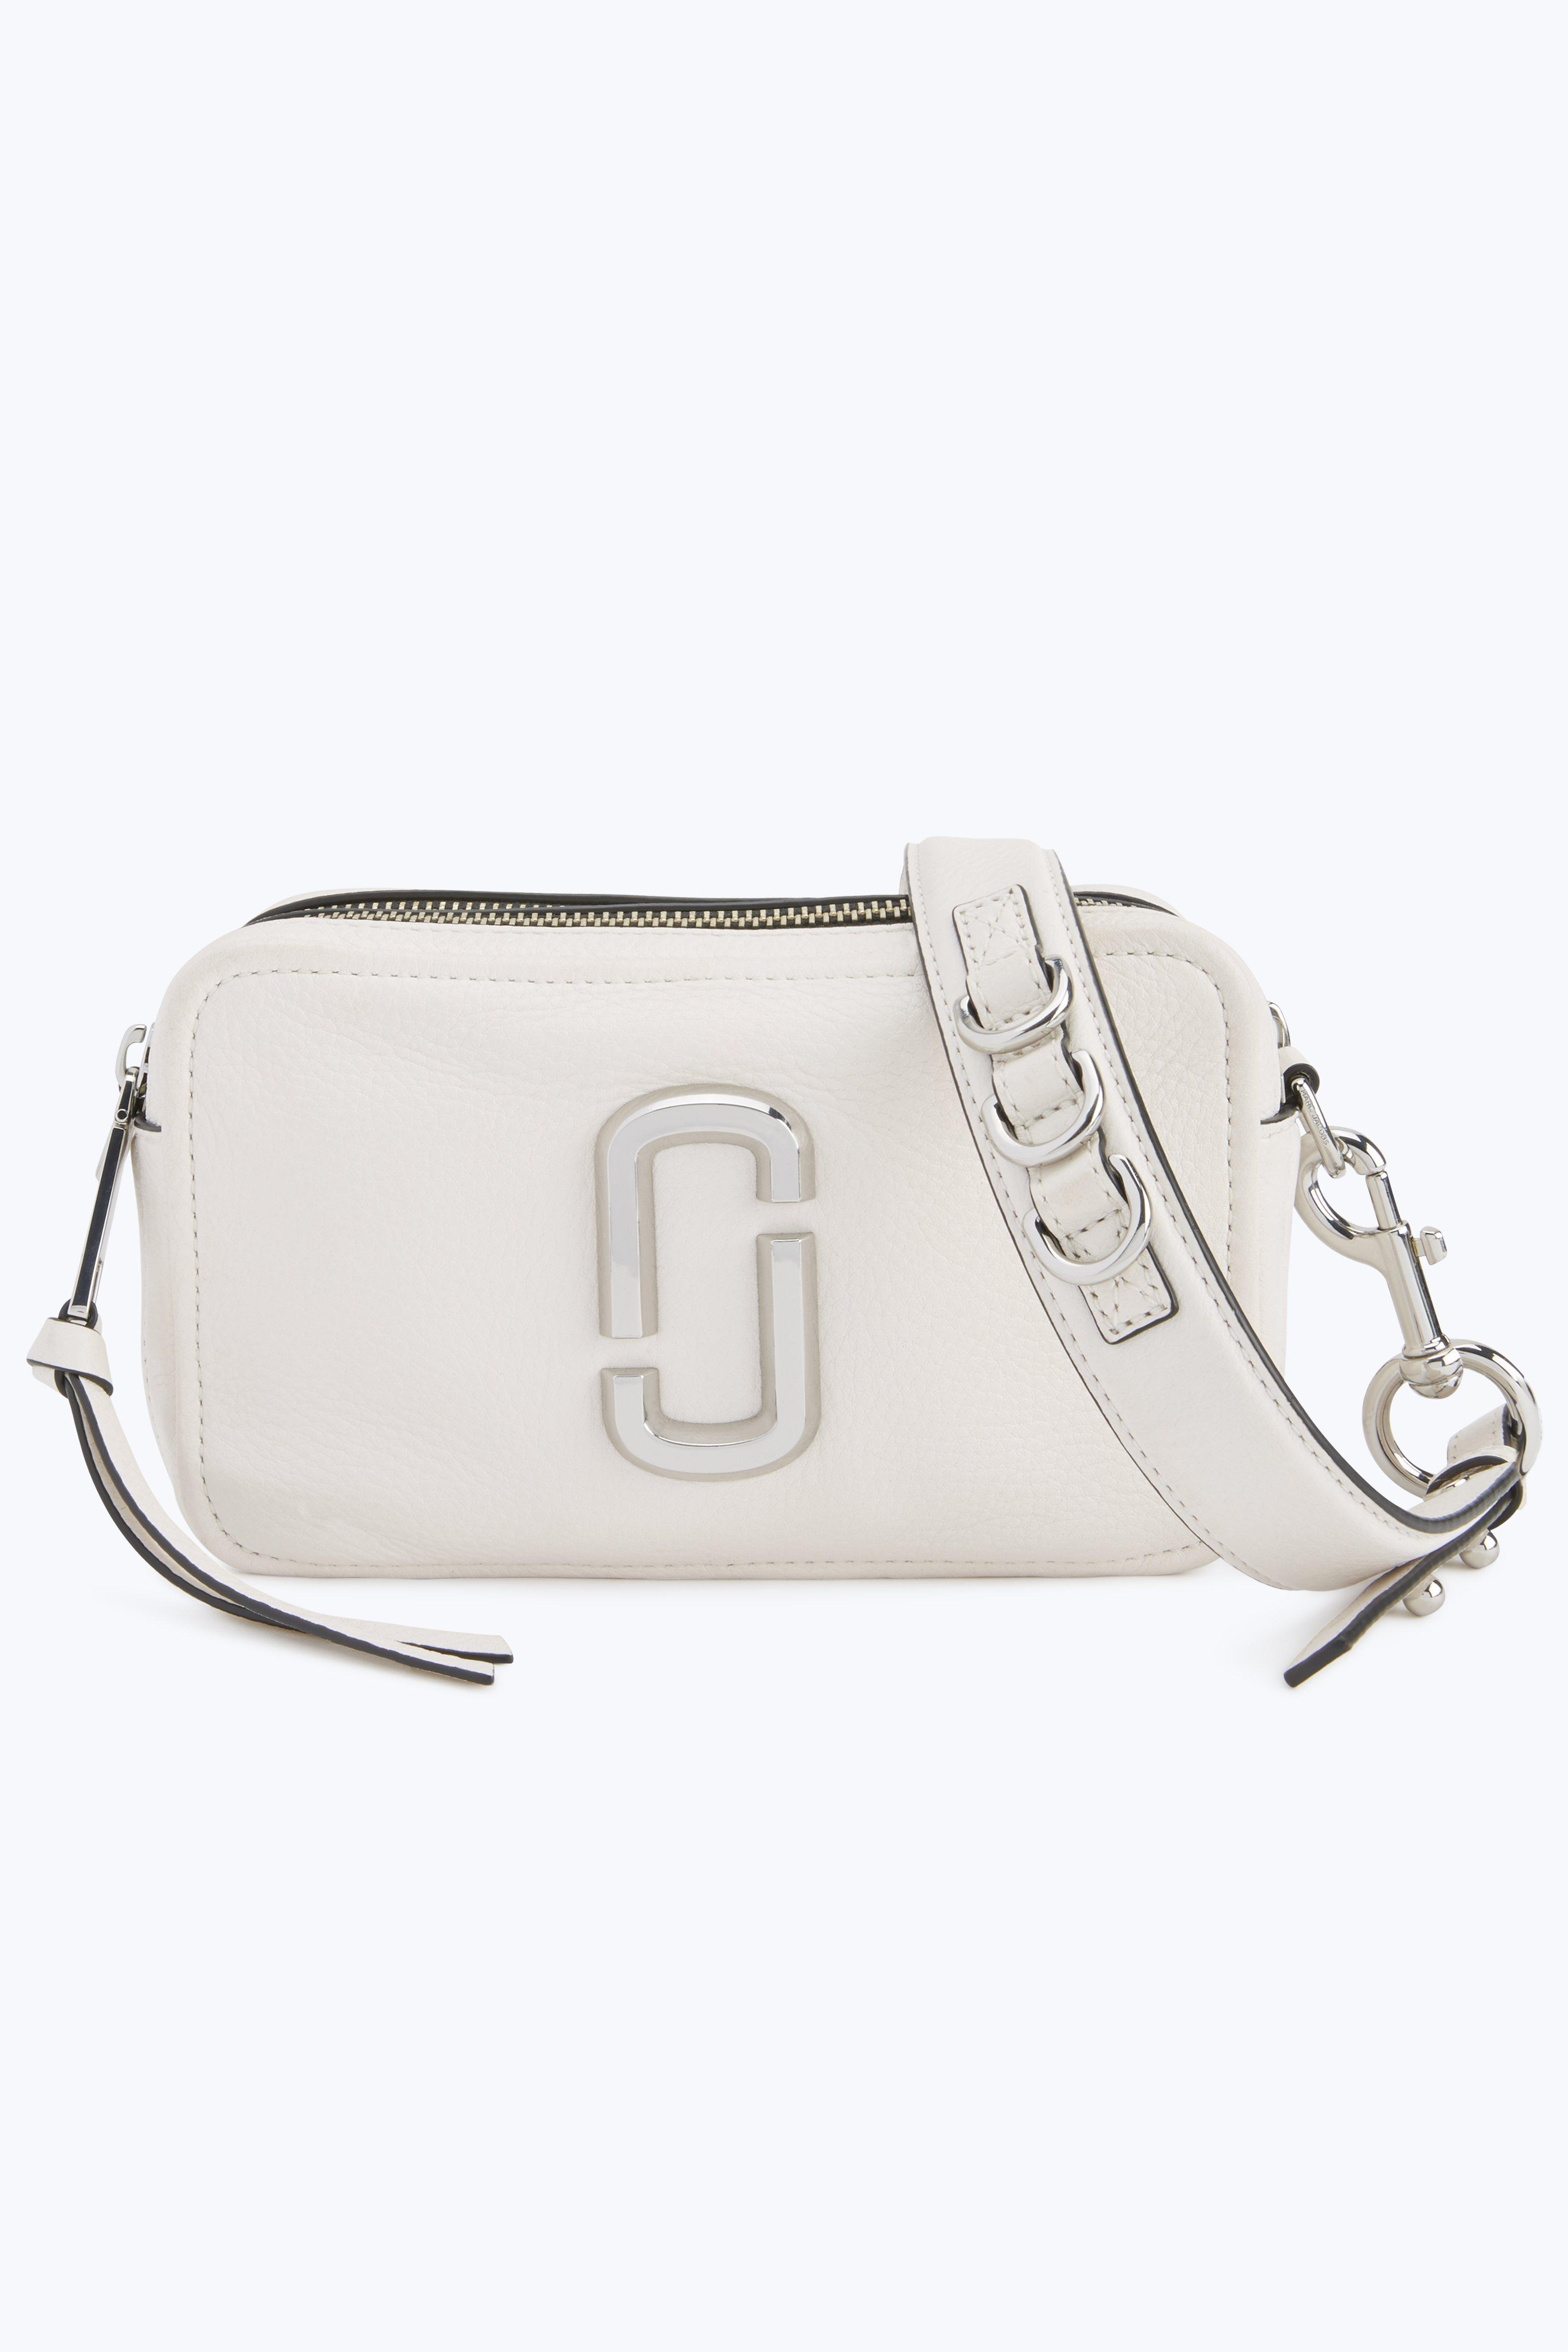 b4866945b68f Marc Jacobs The Softshot 27 Leather Crossbody Bag In Porcelain ...